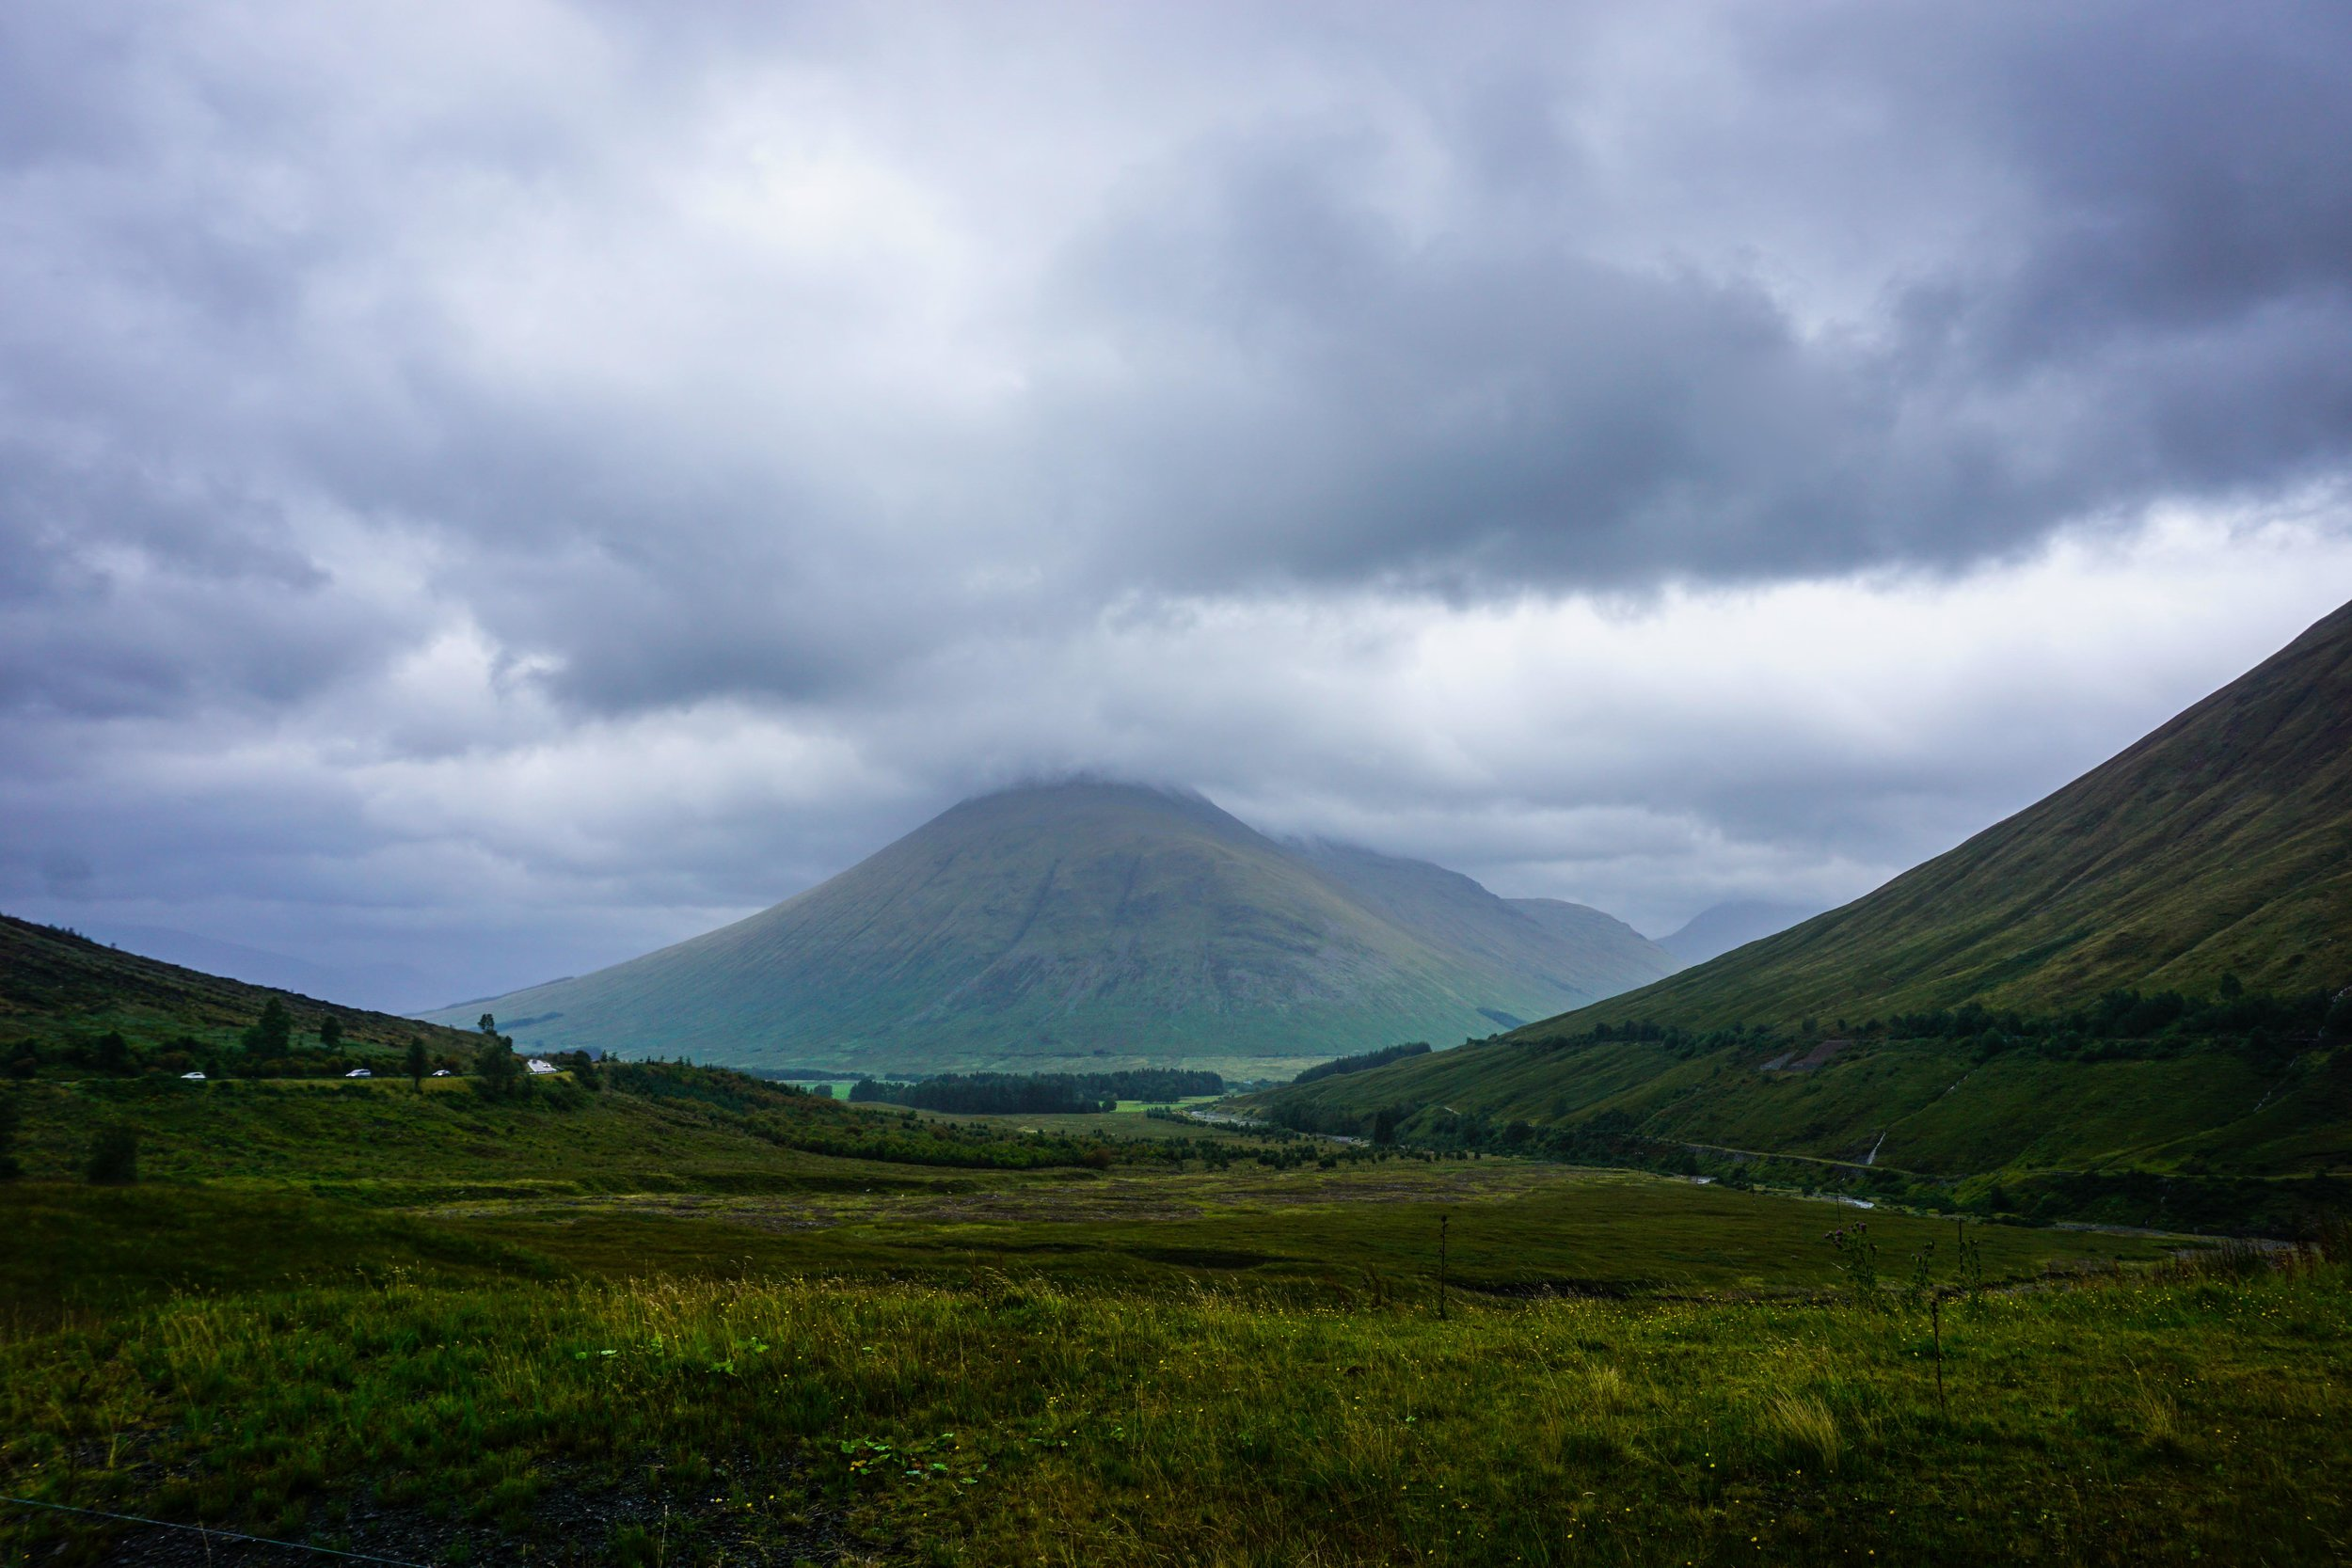 First getting to the Highlands